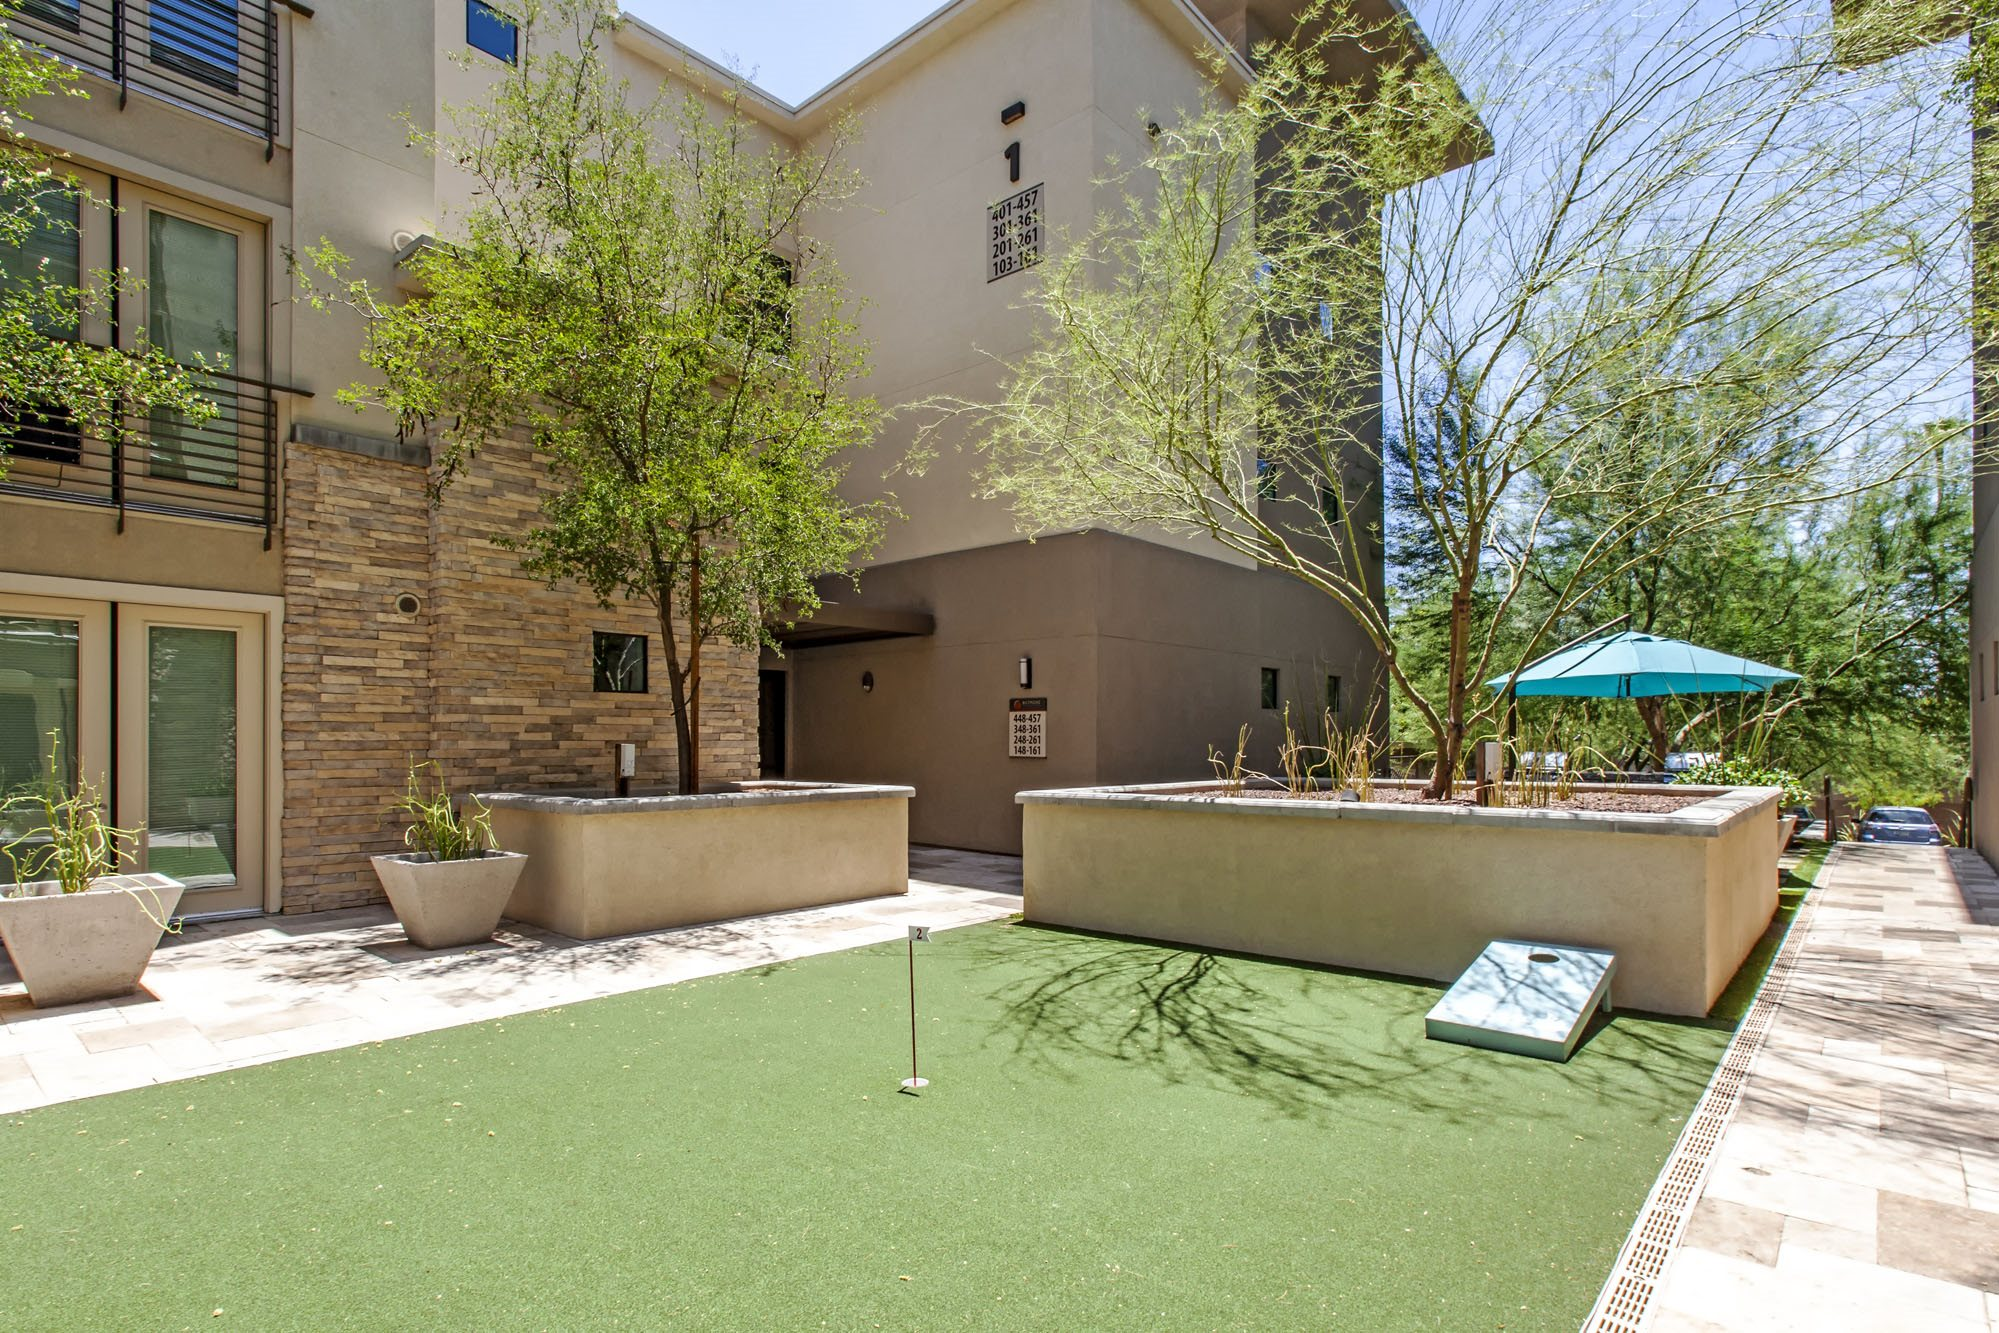 Private resident putting green and outdoor kitchen